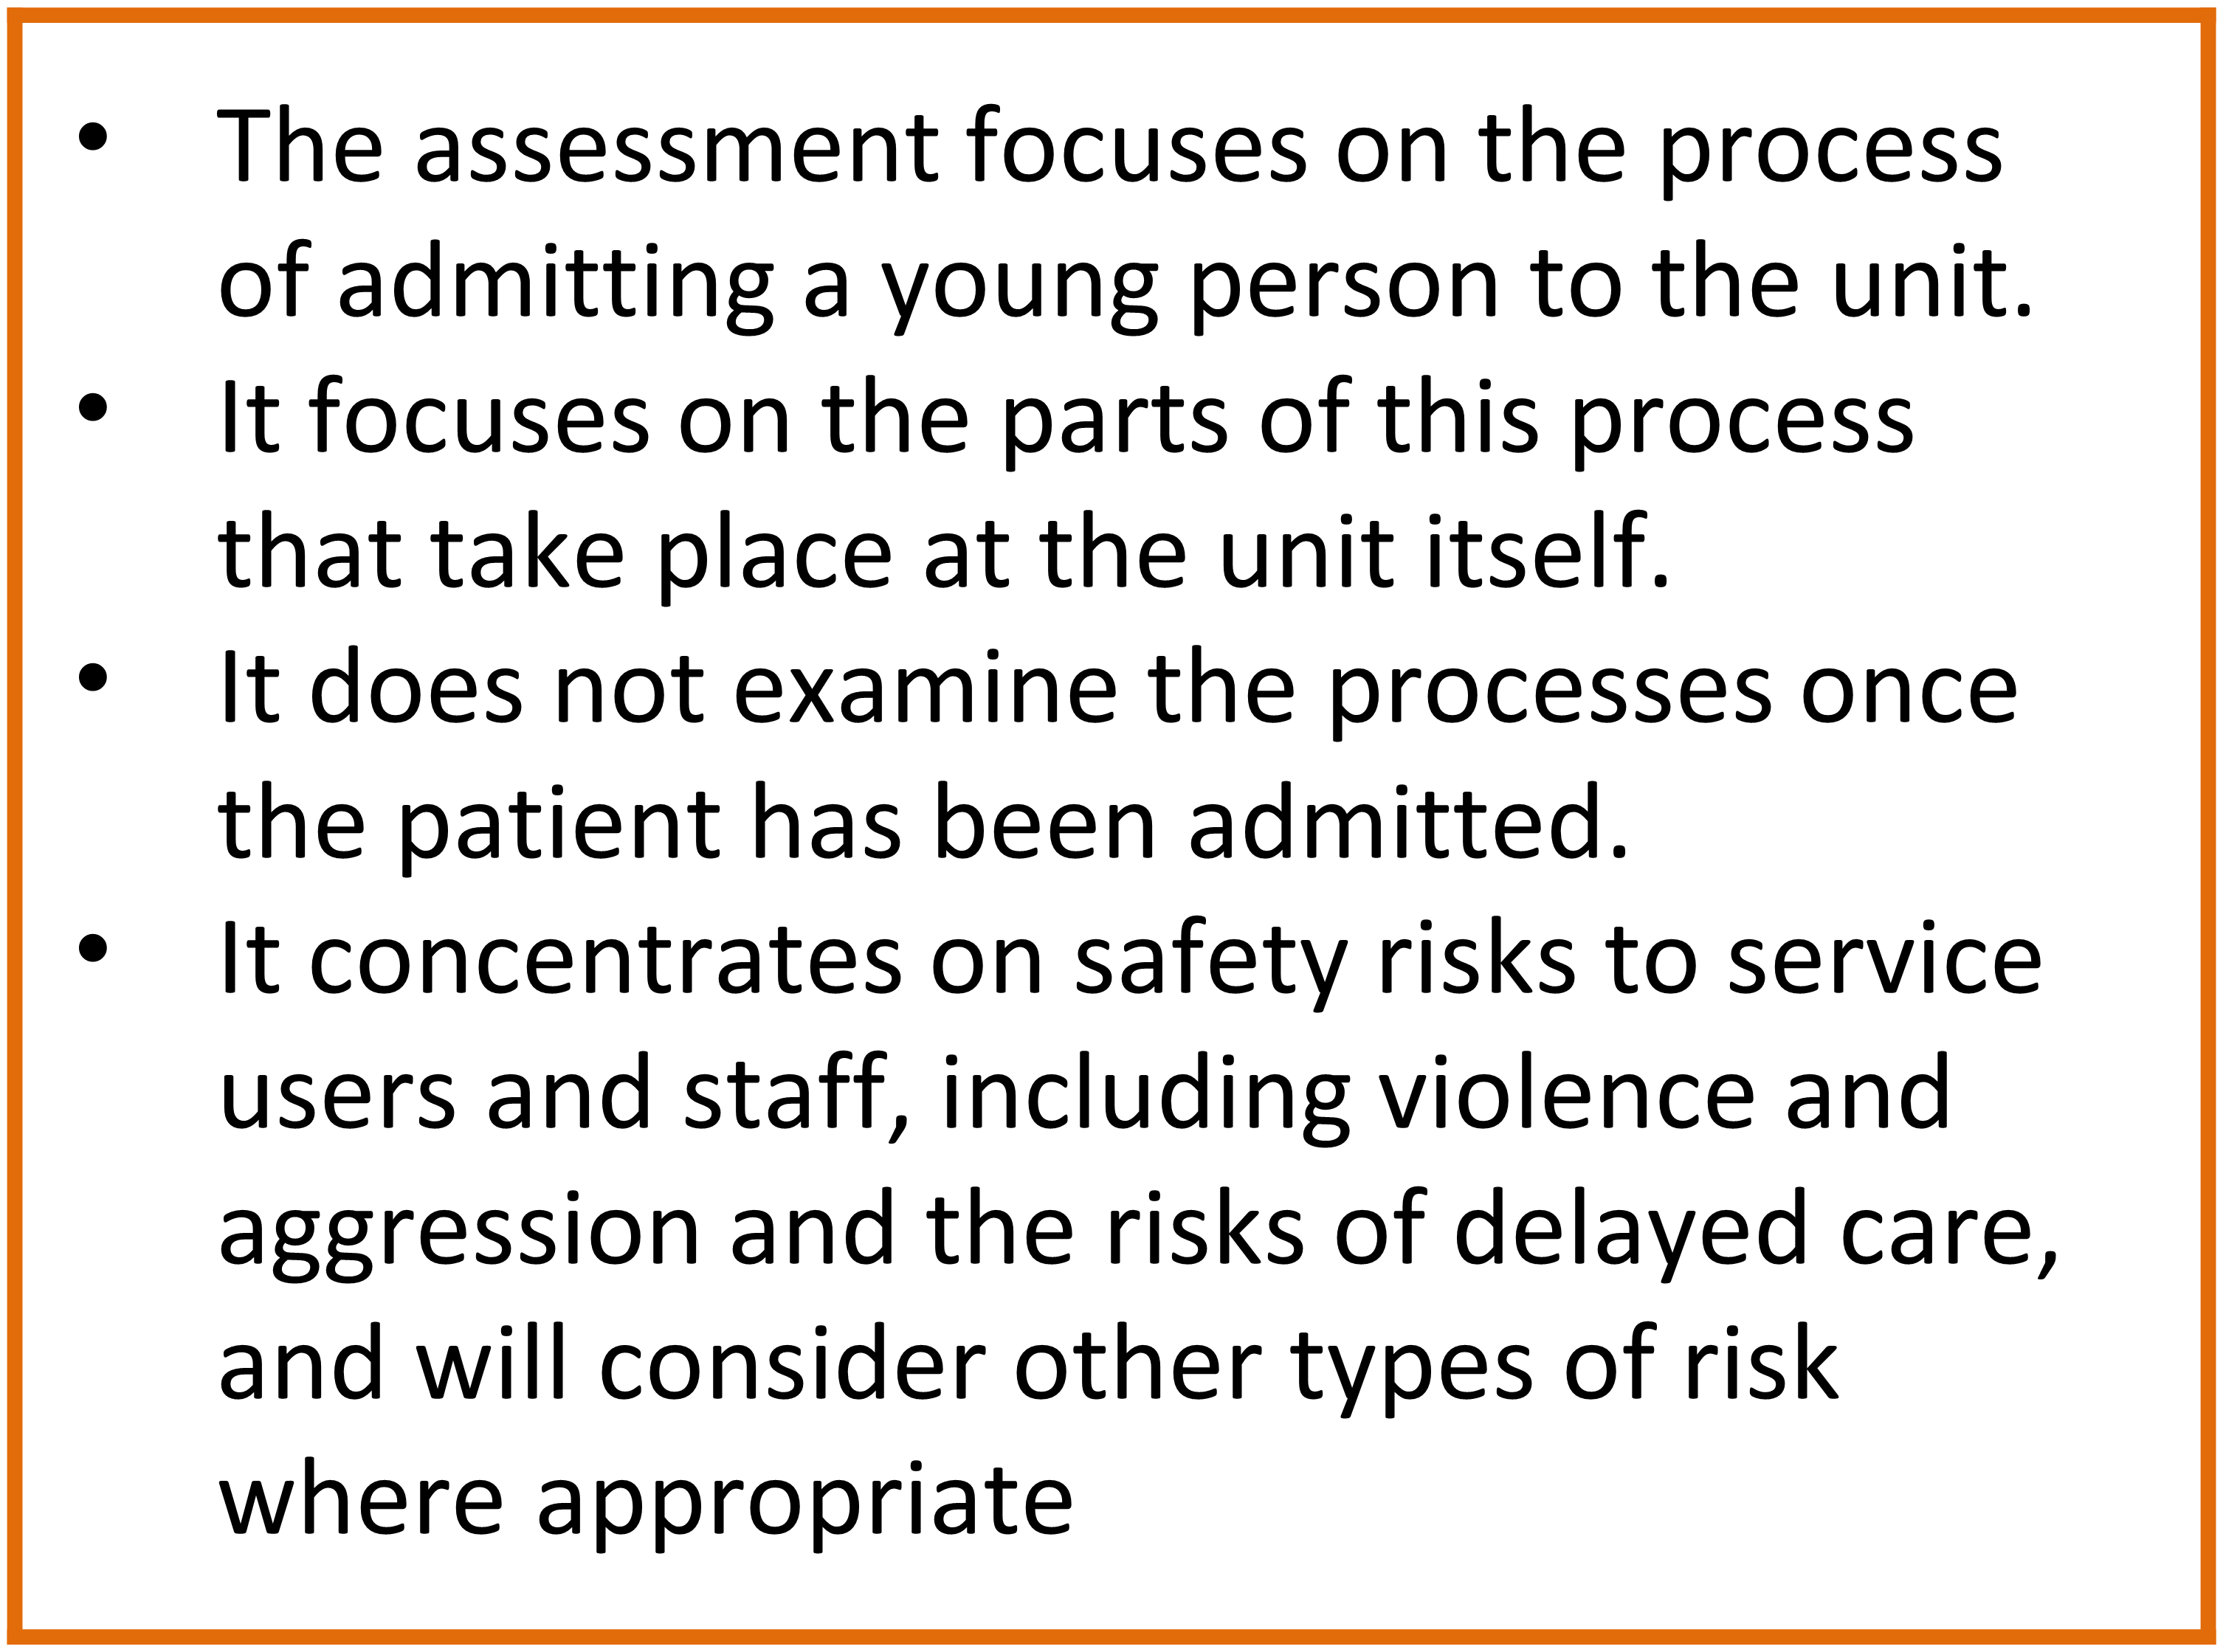 The example assessment focuses on the process of admitting a young person to the unit. It focuses on the parts of this process that take place at the unit itself. It does not examine the processes once the patient has been admitted. It concentrates on safety risks to service users and staff, including violence and aggression and the risks of delayed care, and will consider other types of risk where appropriate.